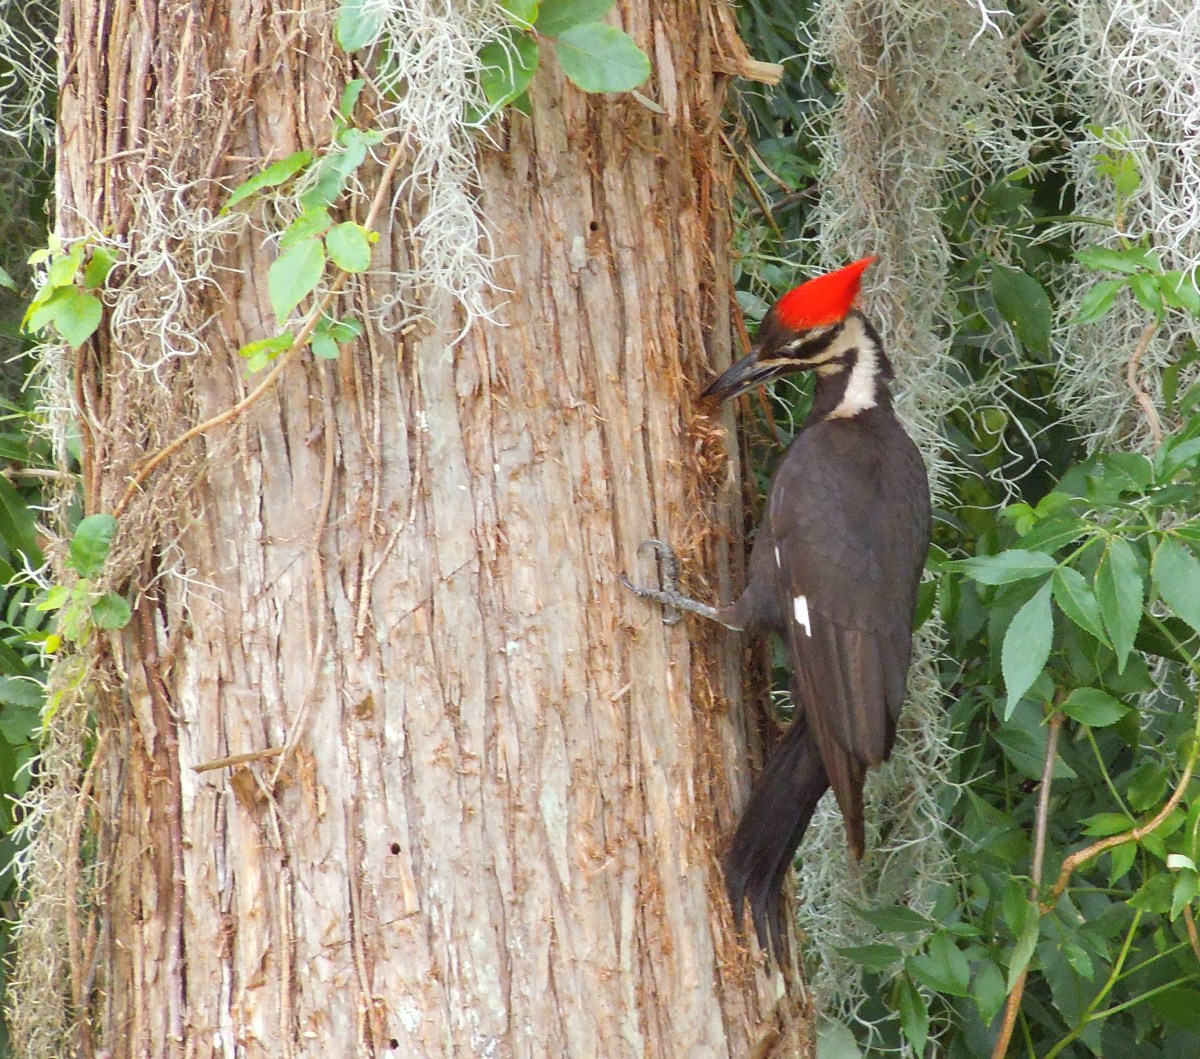 The photo of a pileated woodpecker was taken in Central Florida.